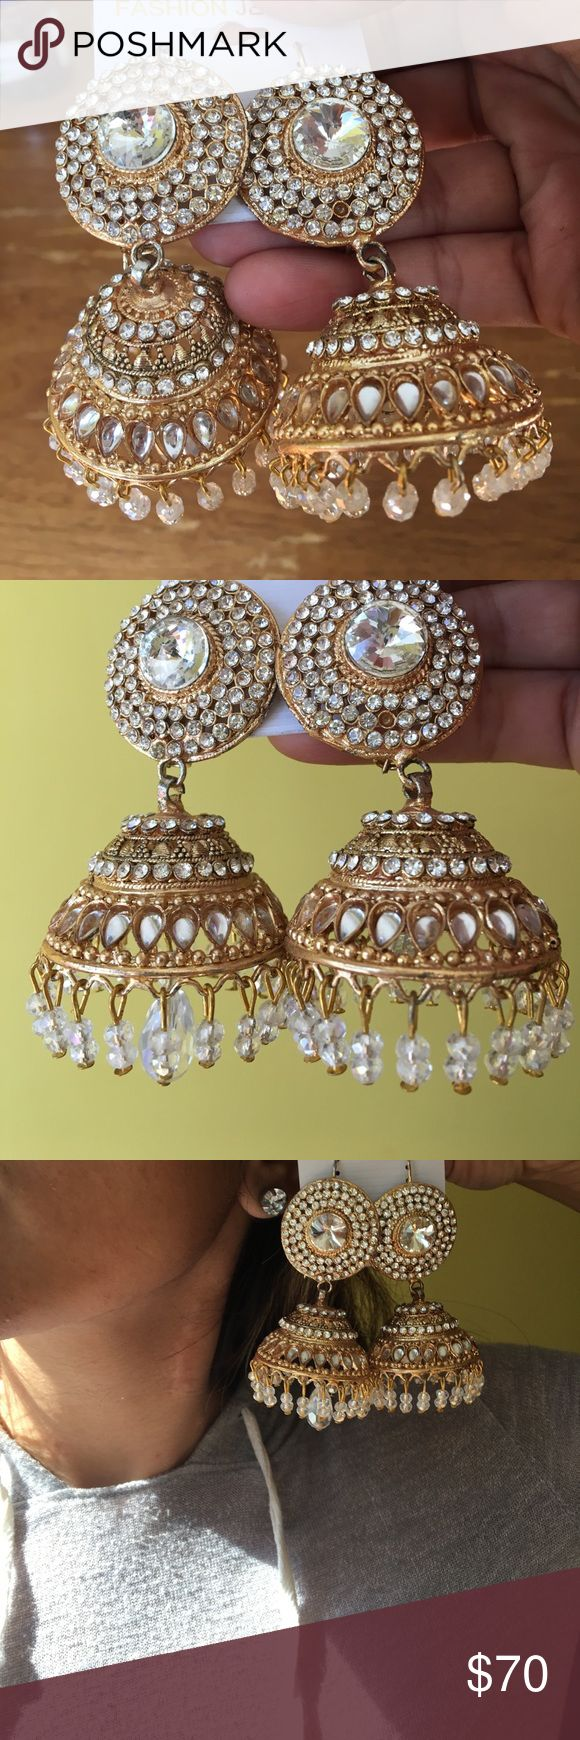 Gold and crystal statement Indian big earrings Gold and crystal rhinestone and Kundan statement bridal Indian big earrings jhumkas. Bought from a boutique in pakistan. Price is firm. Jewelry Earrings